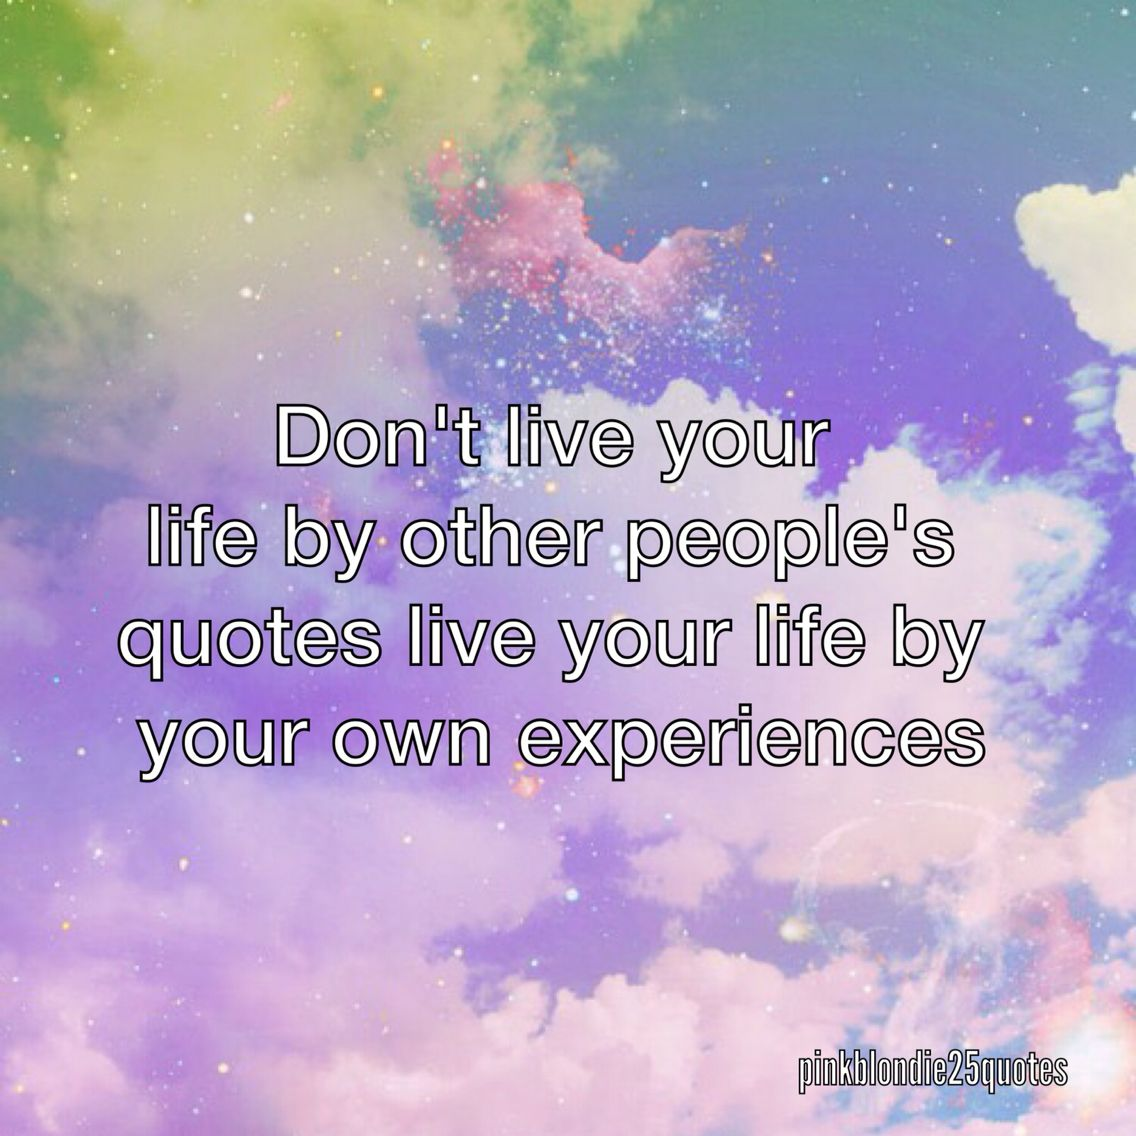 Quotes To Live Your Life By Don't Live Your Lifeother People's Quotes Live Your Life.